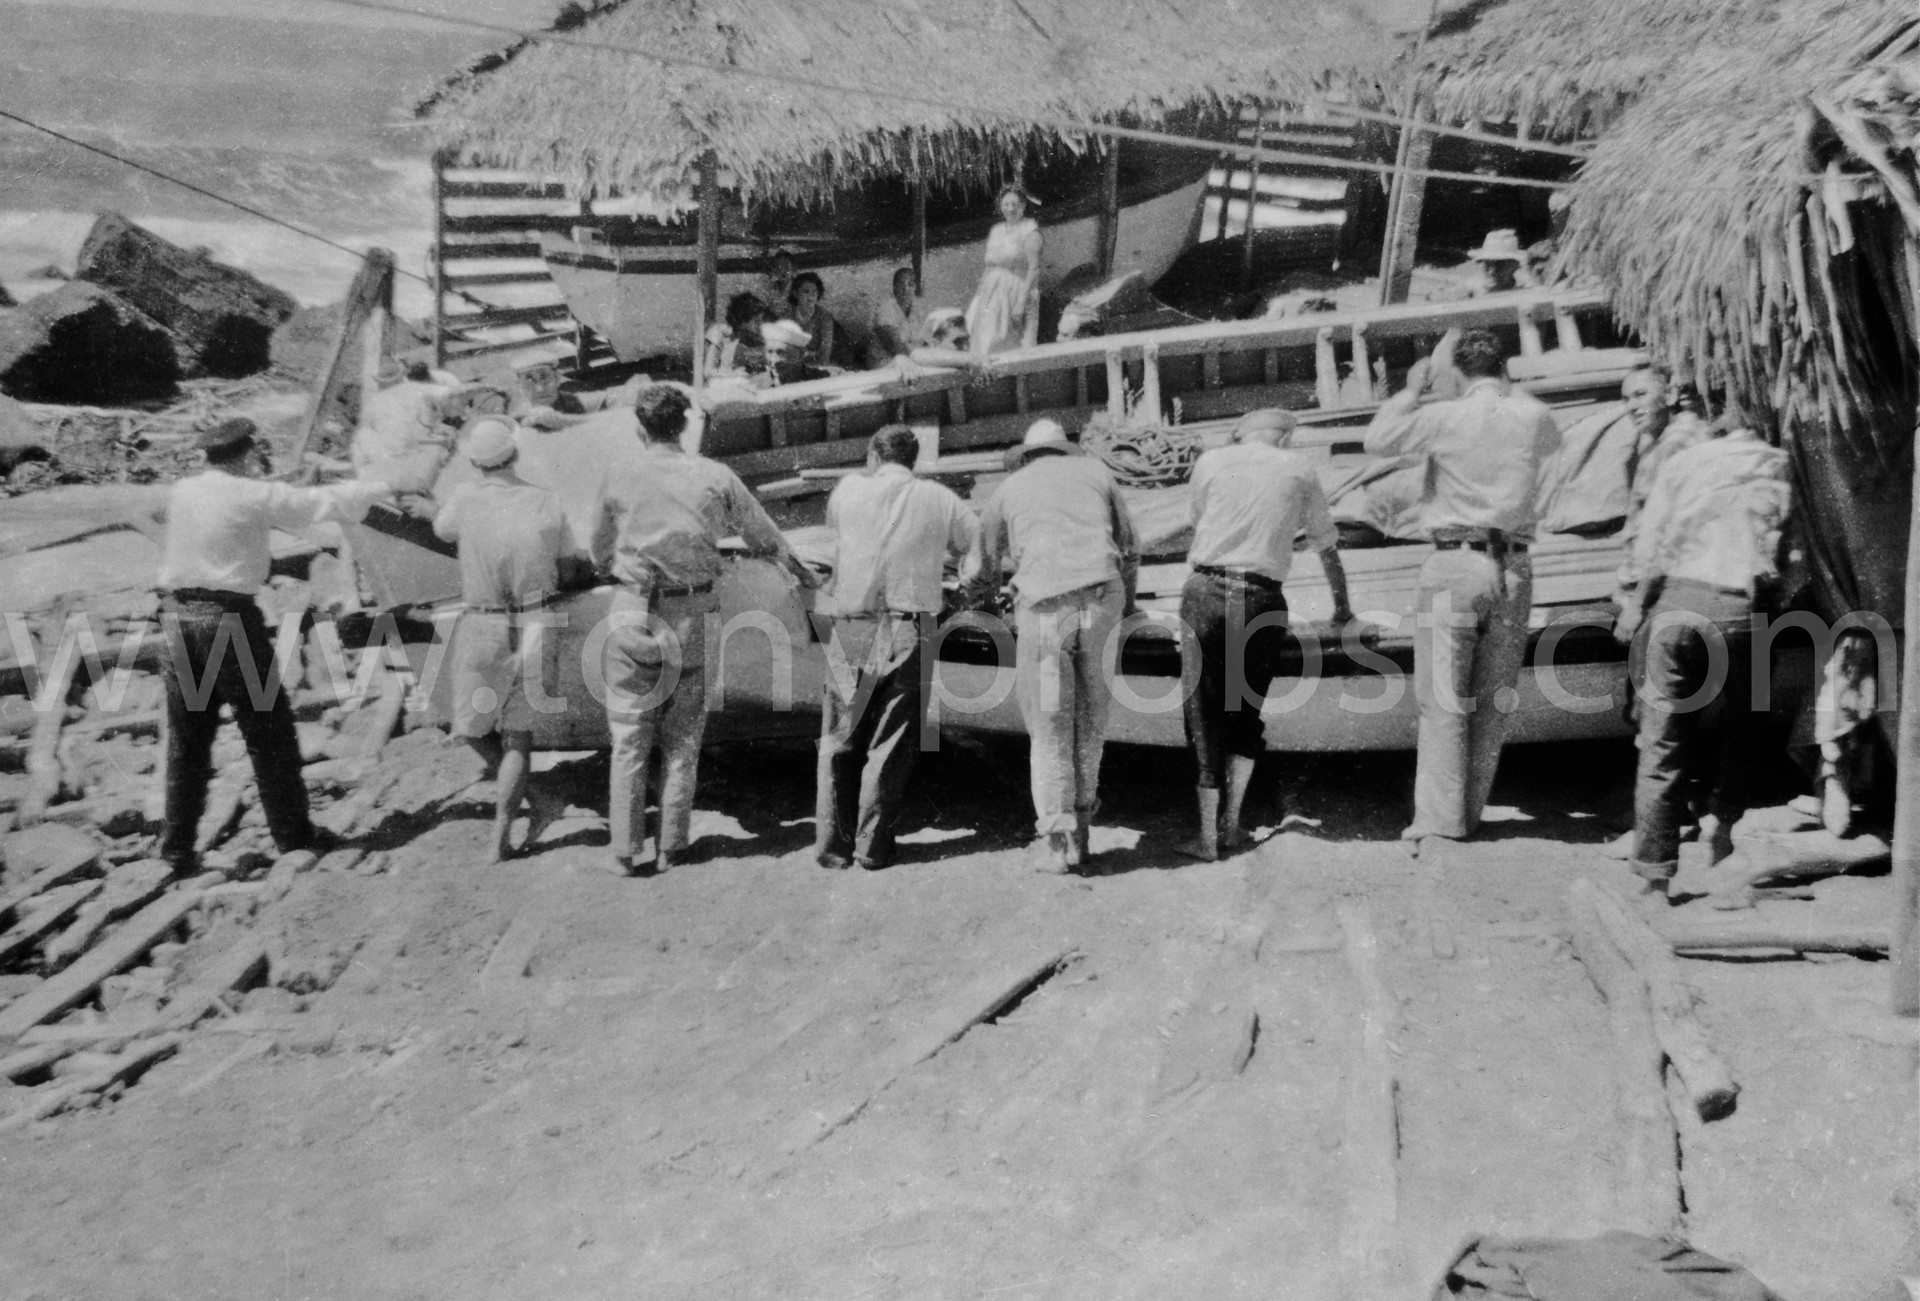 1961 July, Getting ready to pull Longboat into Bounty Bay. Chrissty, Warren, Elwin, Ivan, Melvin, Pastors wife Mrs. Davis standing in the back